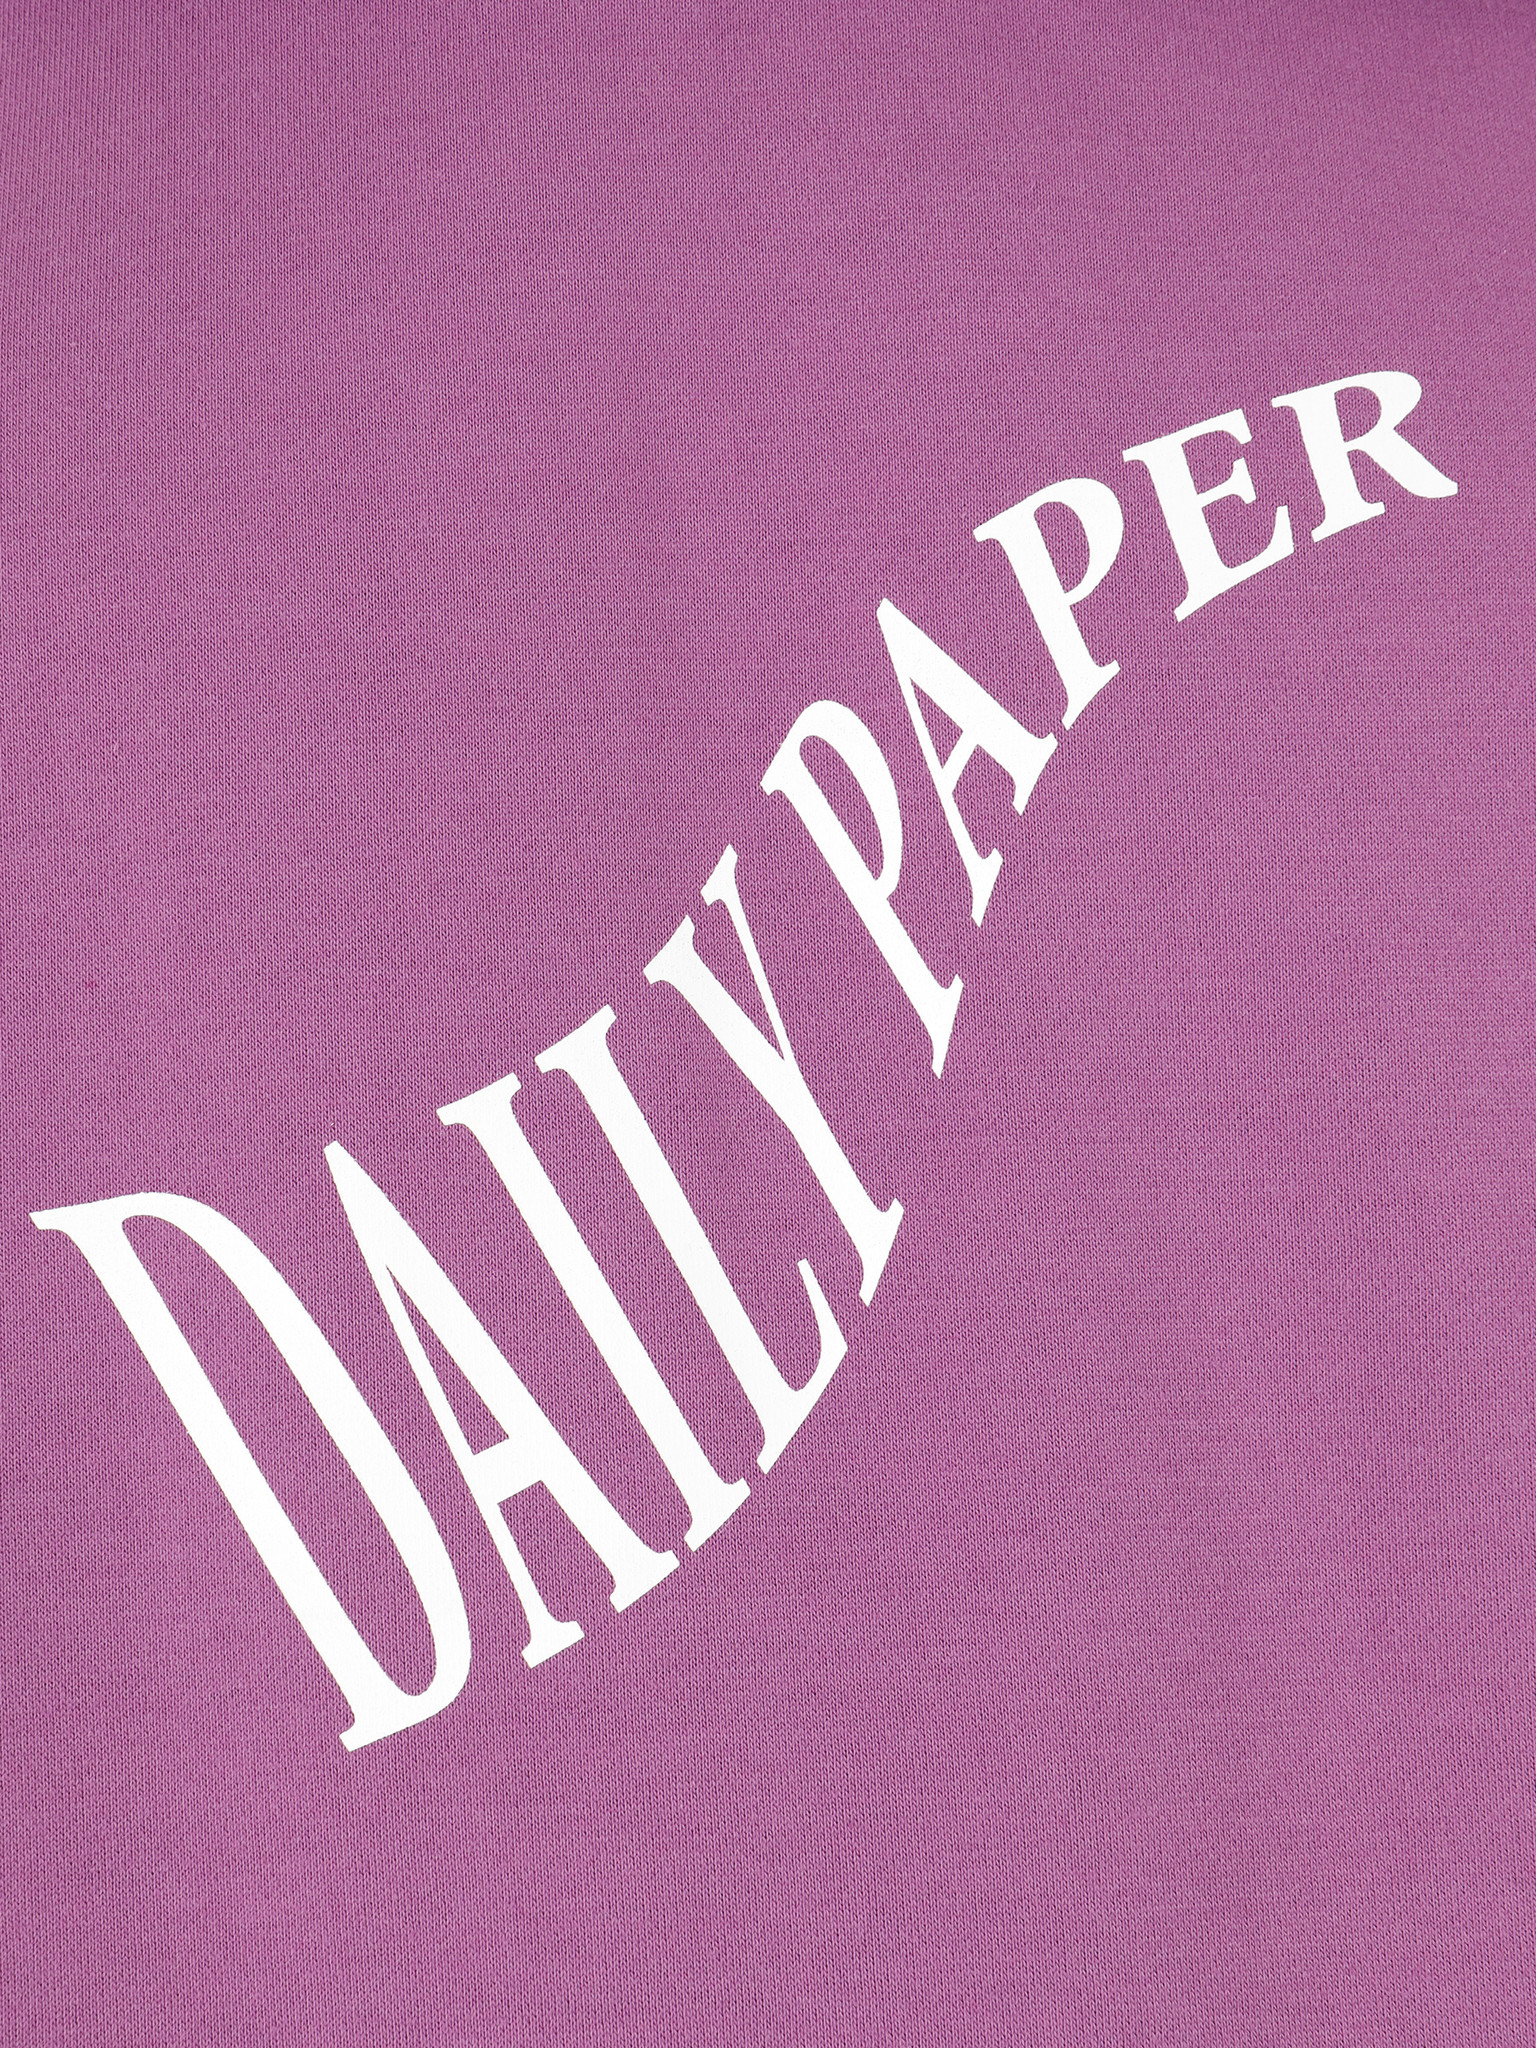 Daily Paper Daily Paper Gacrush Hoodie Crushed Grape Purple 19F1HD03-01